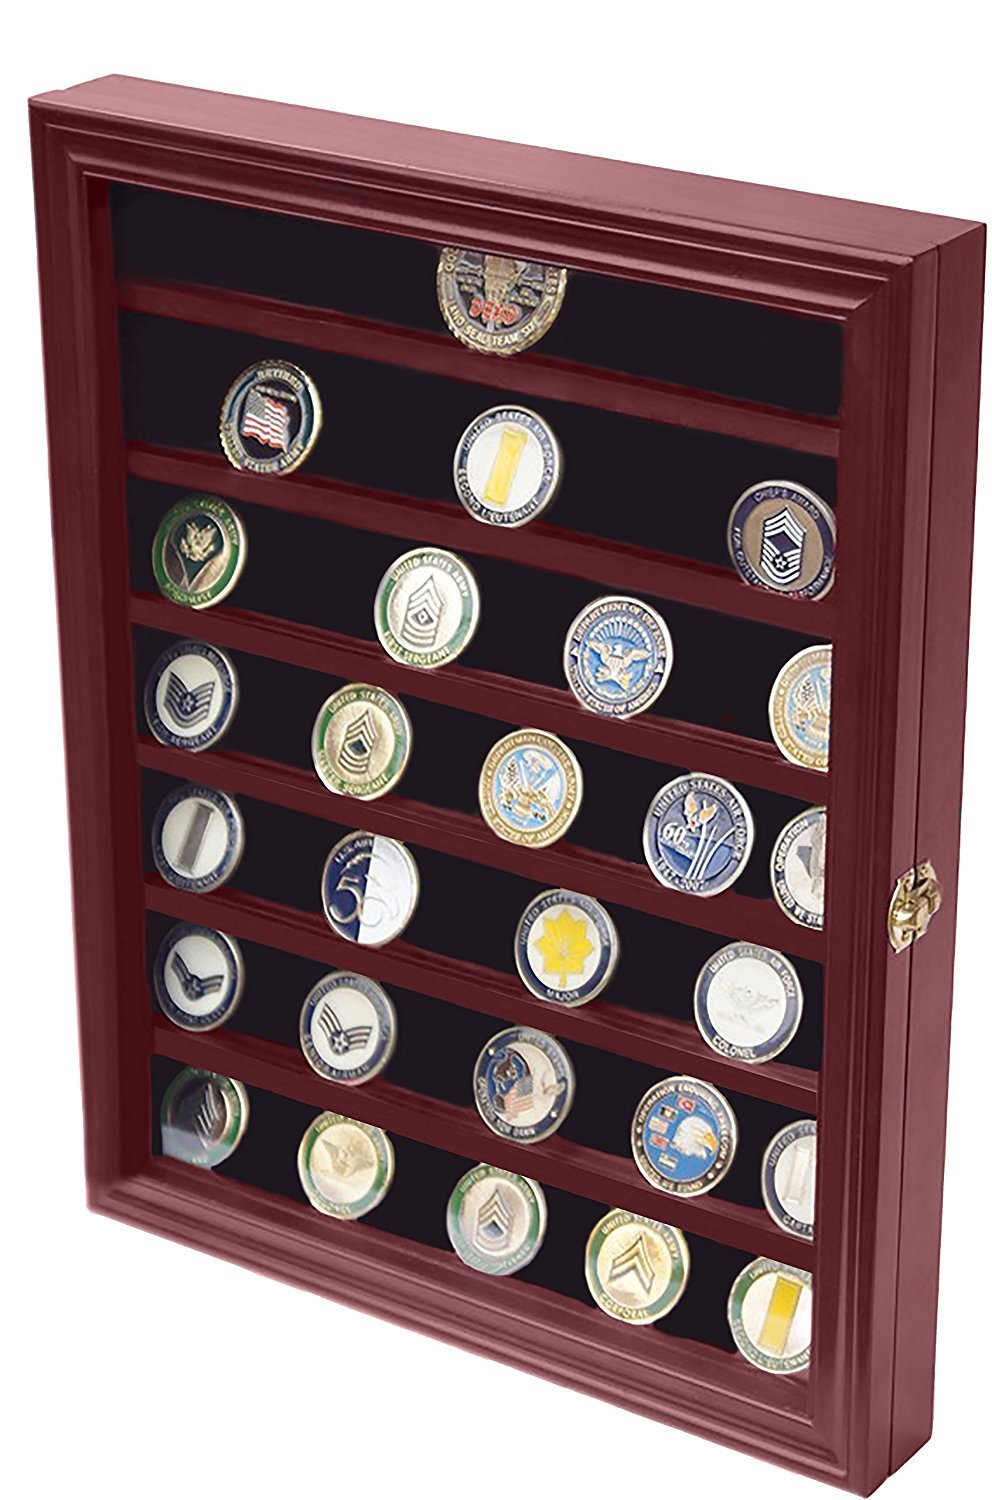 DECOMIL - Military Challenge Coin Display Case Cabinet Rack Holder with Door by DECOMIL